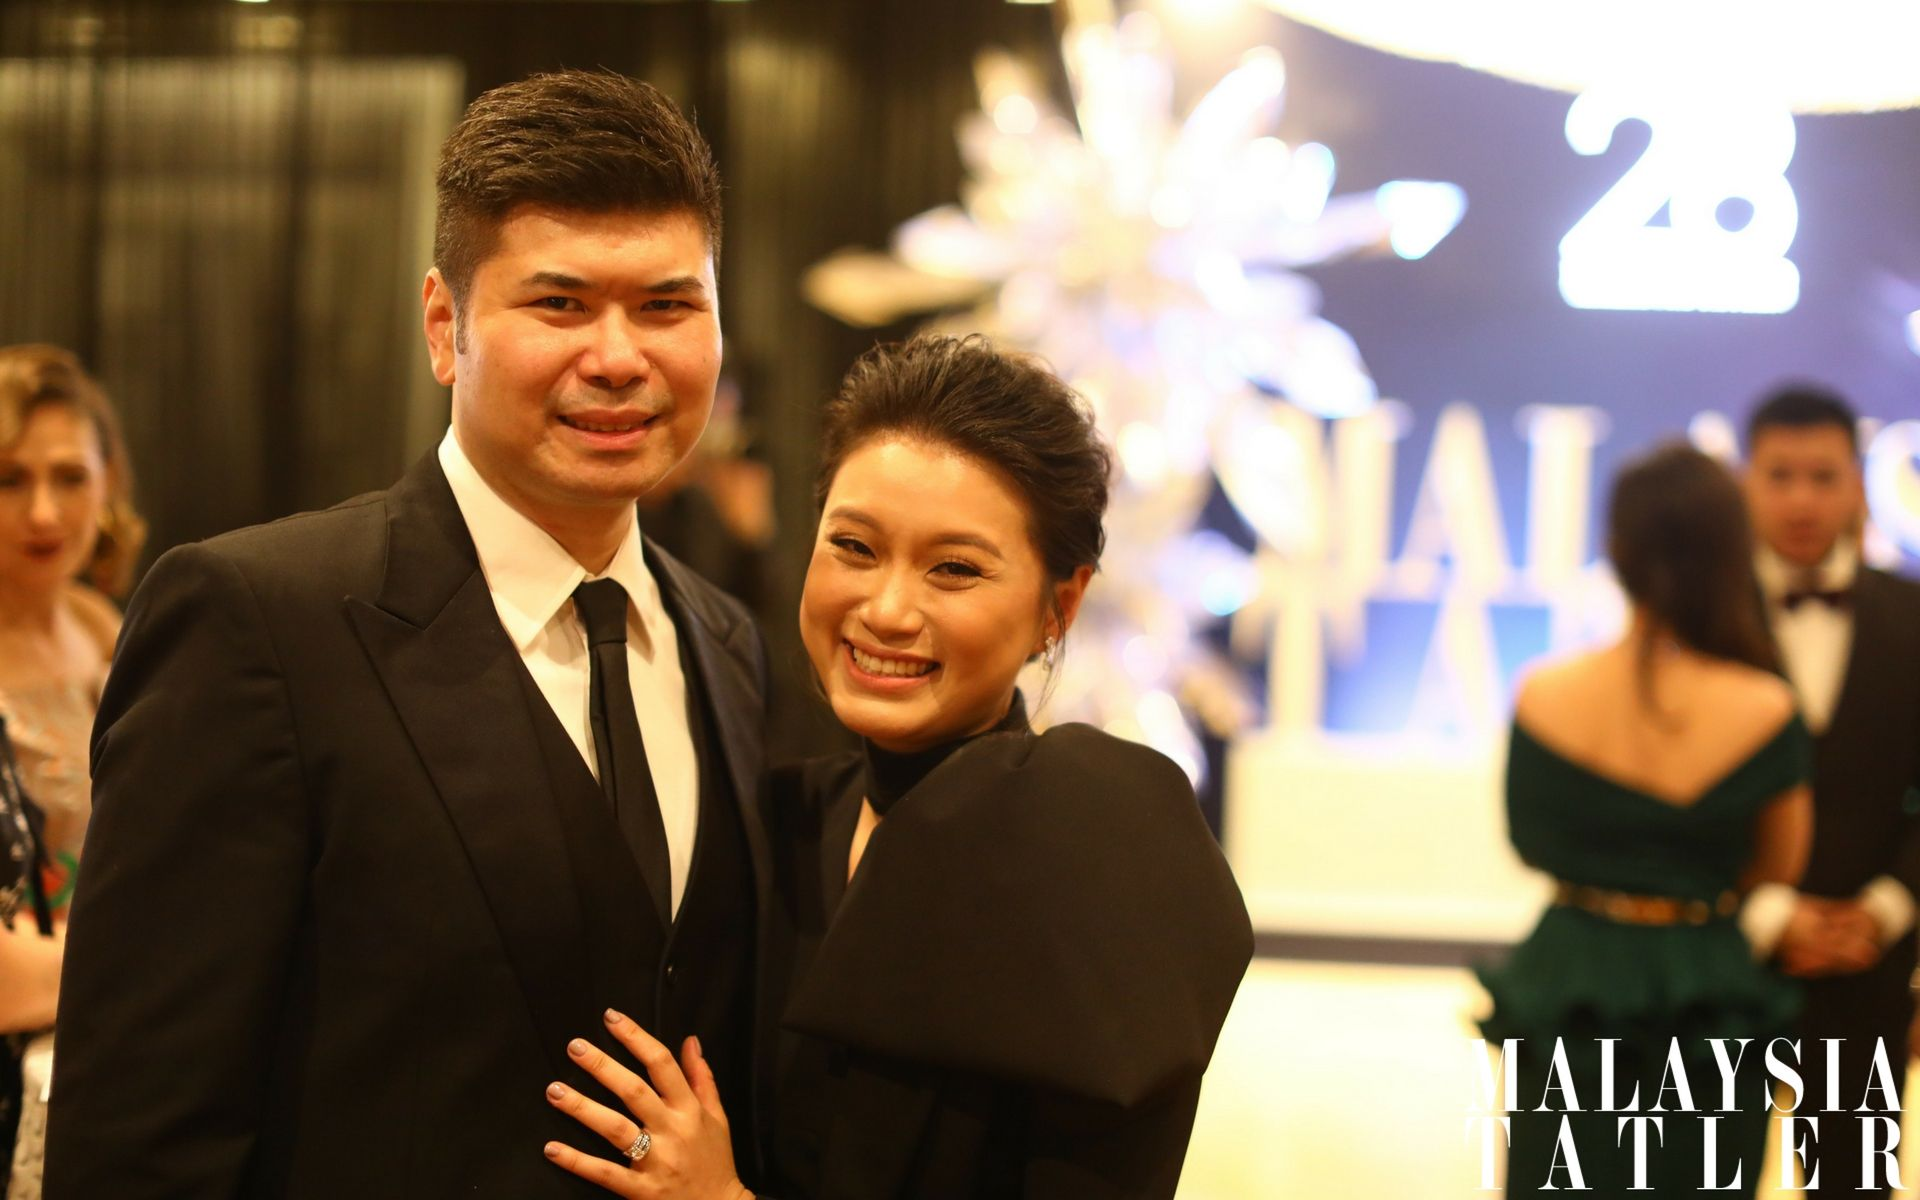 Ronald and Elvina Ling